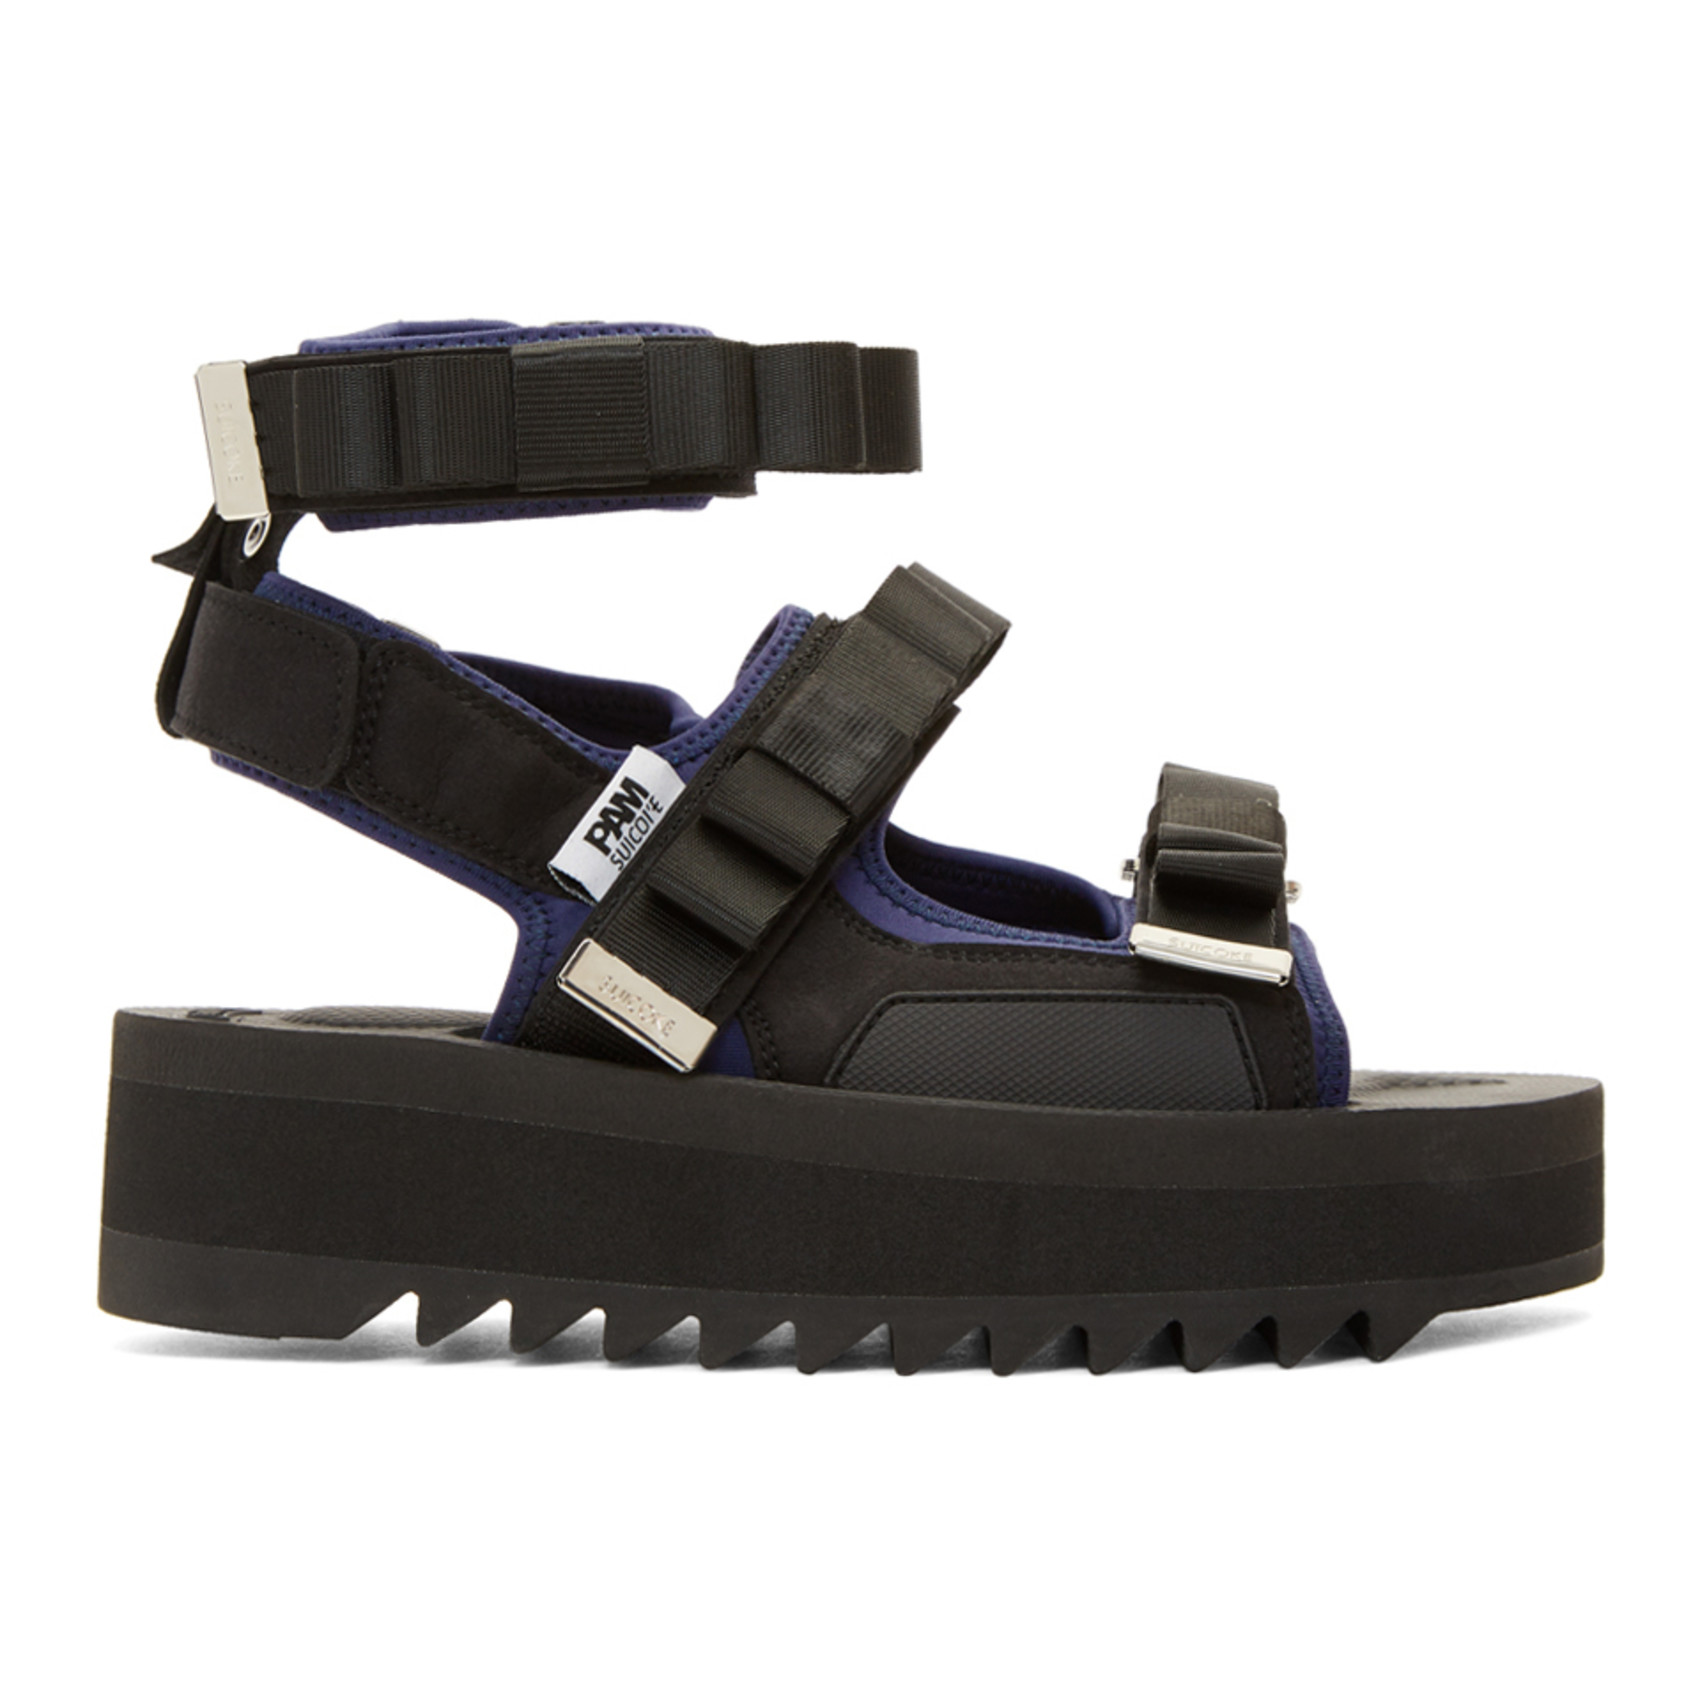 Black Suicoke Edition Bow Platform Sandals by Perks And Mini